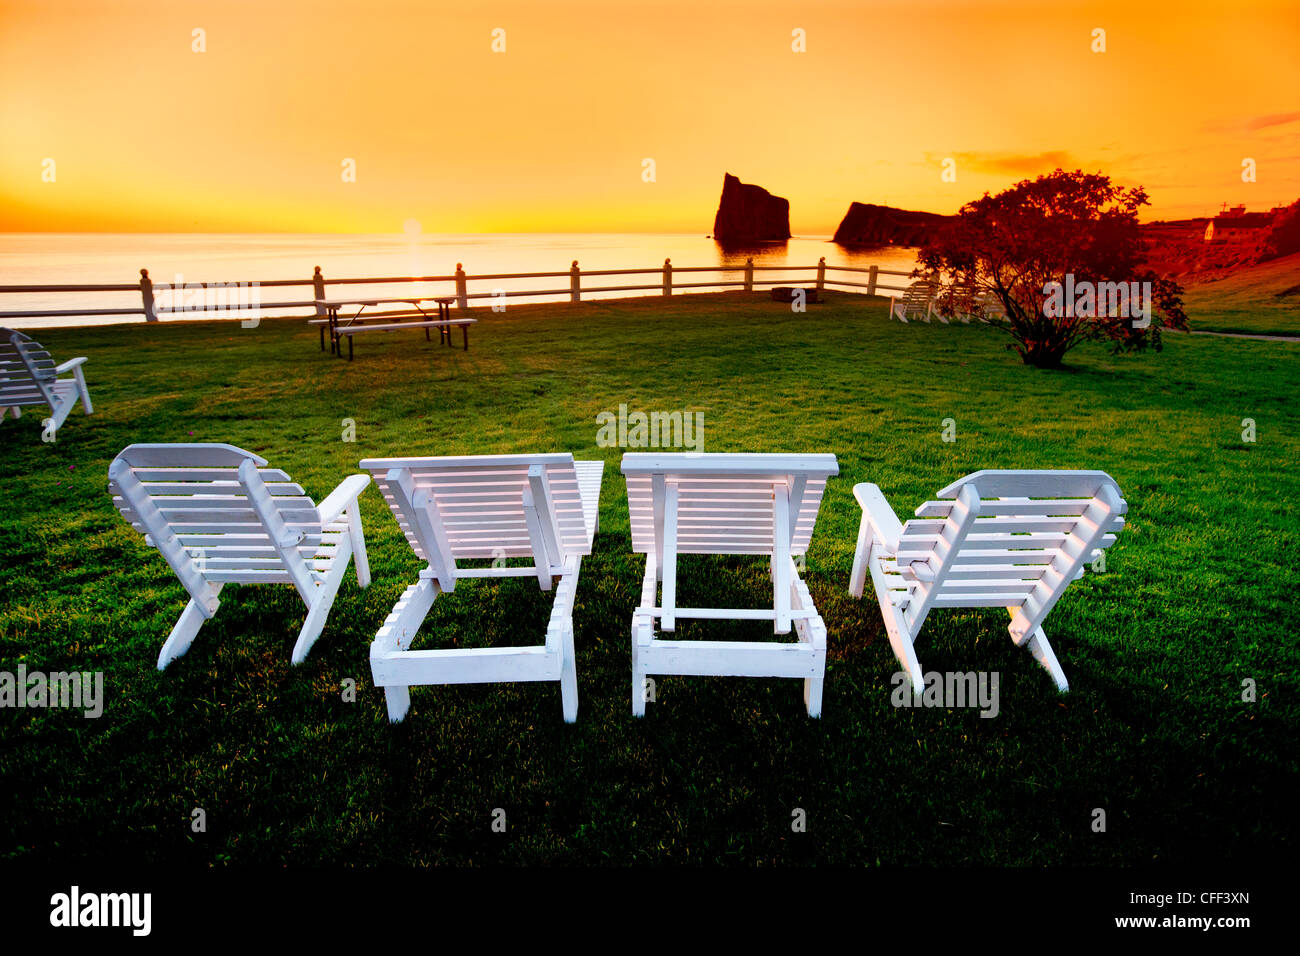 Lawn chairs and Perce Rock at sunrise, Perce, Gaspé Penninsula, Quebec, Canada - Stock Image